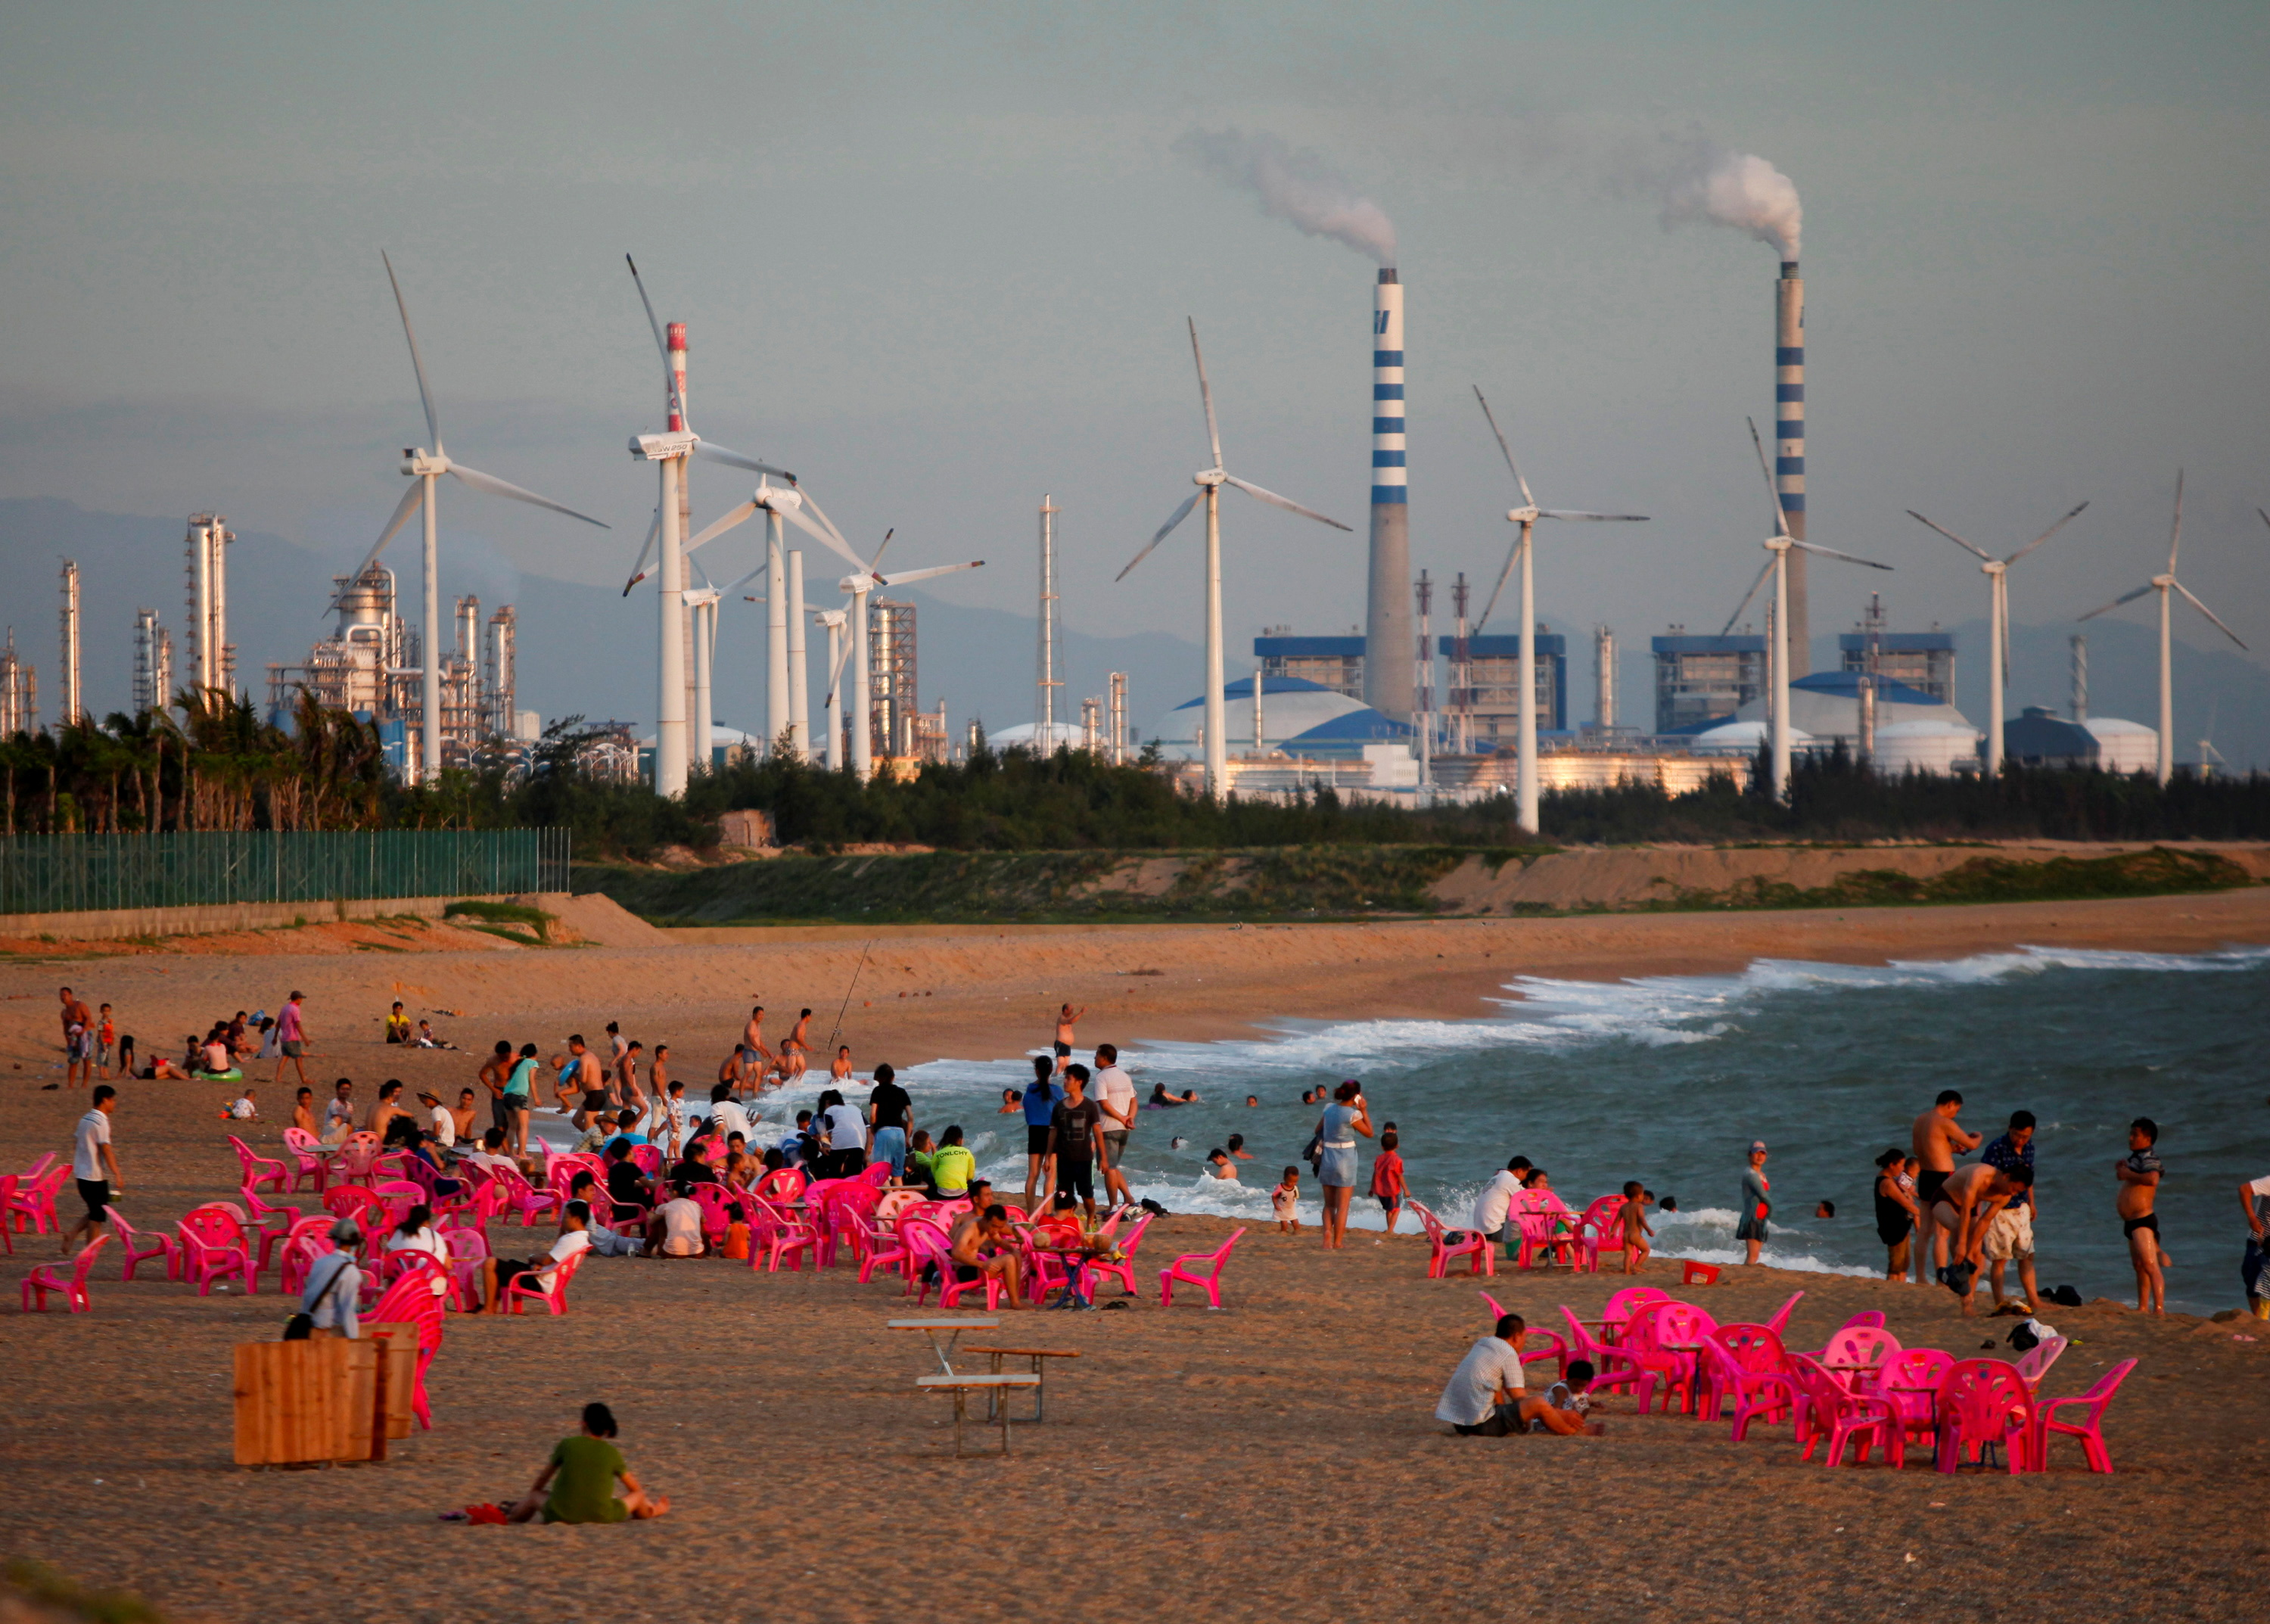 Windmills and a power plant can be seen in the distance as beachgoers watch sunset in the city of Dongfang on the western side of China's island province of Hainan, June 18, 2014. REUTERS/John Ruwitch/File Photo